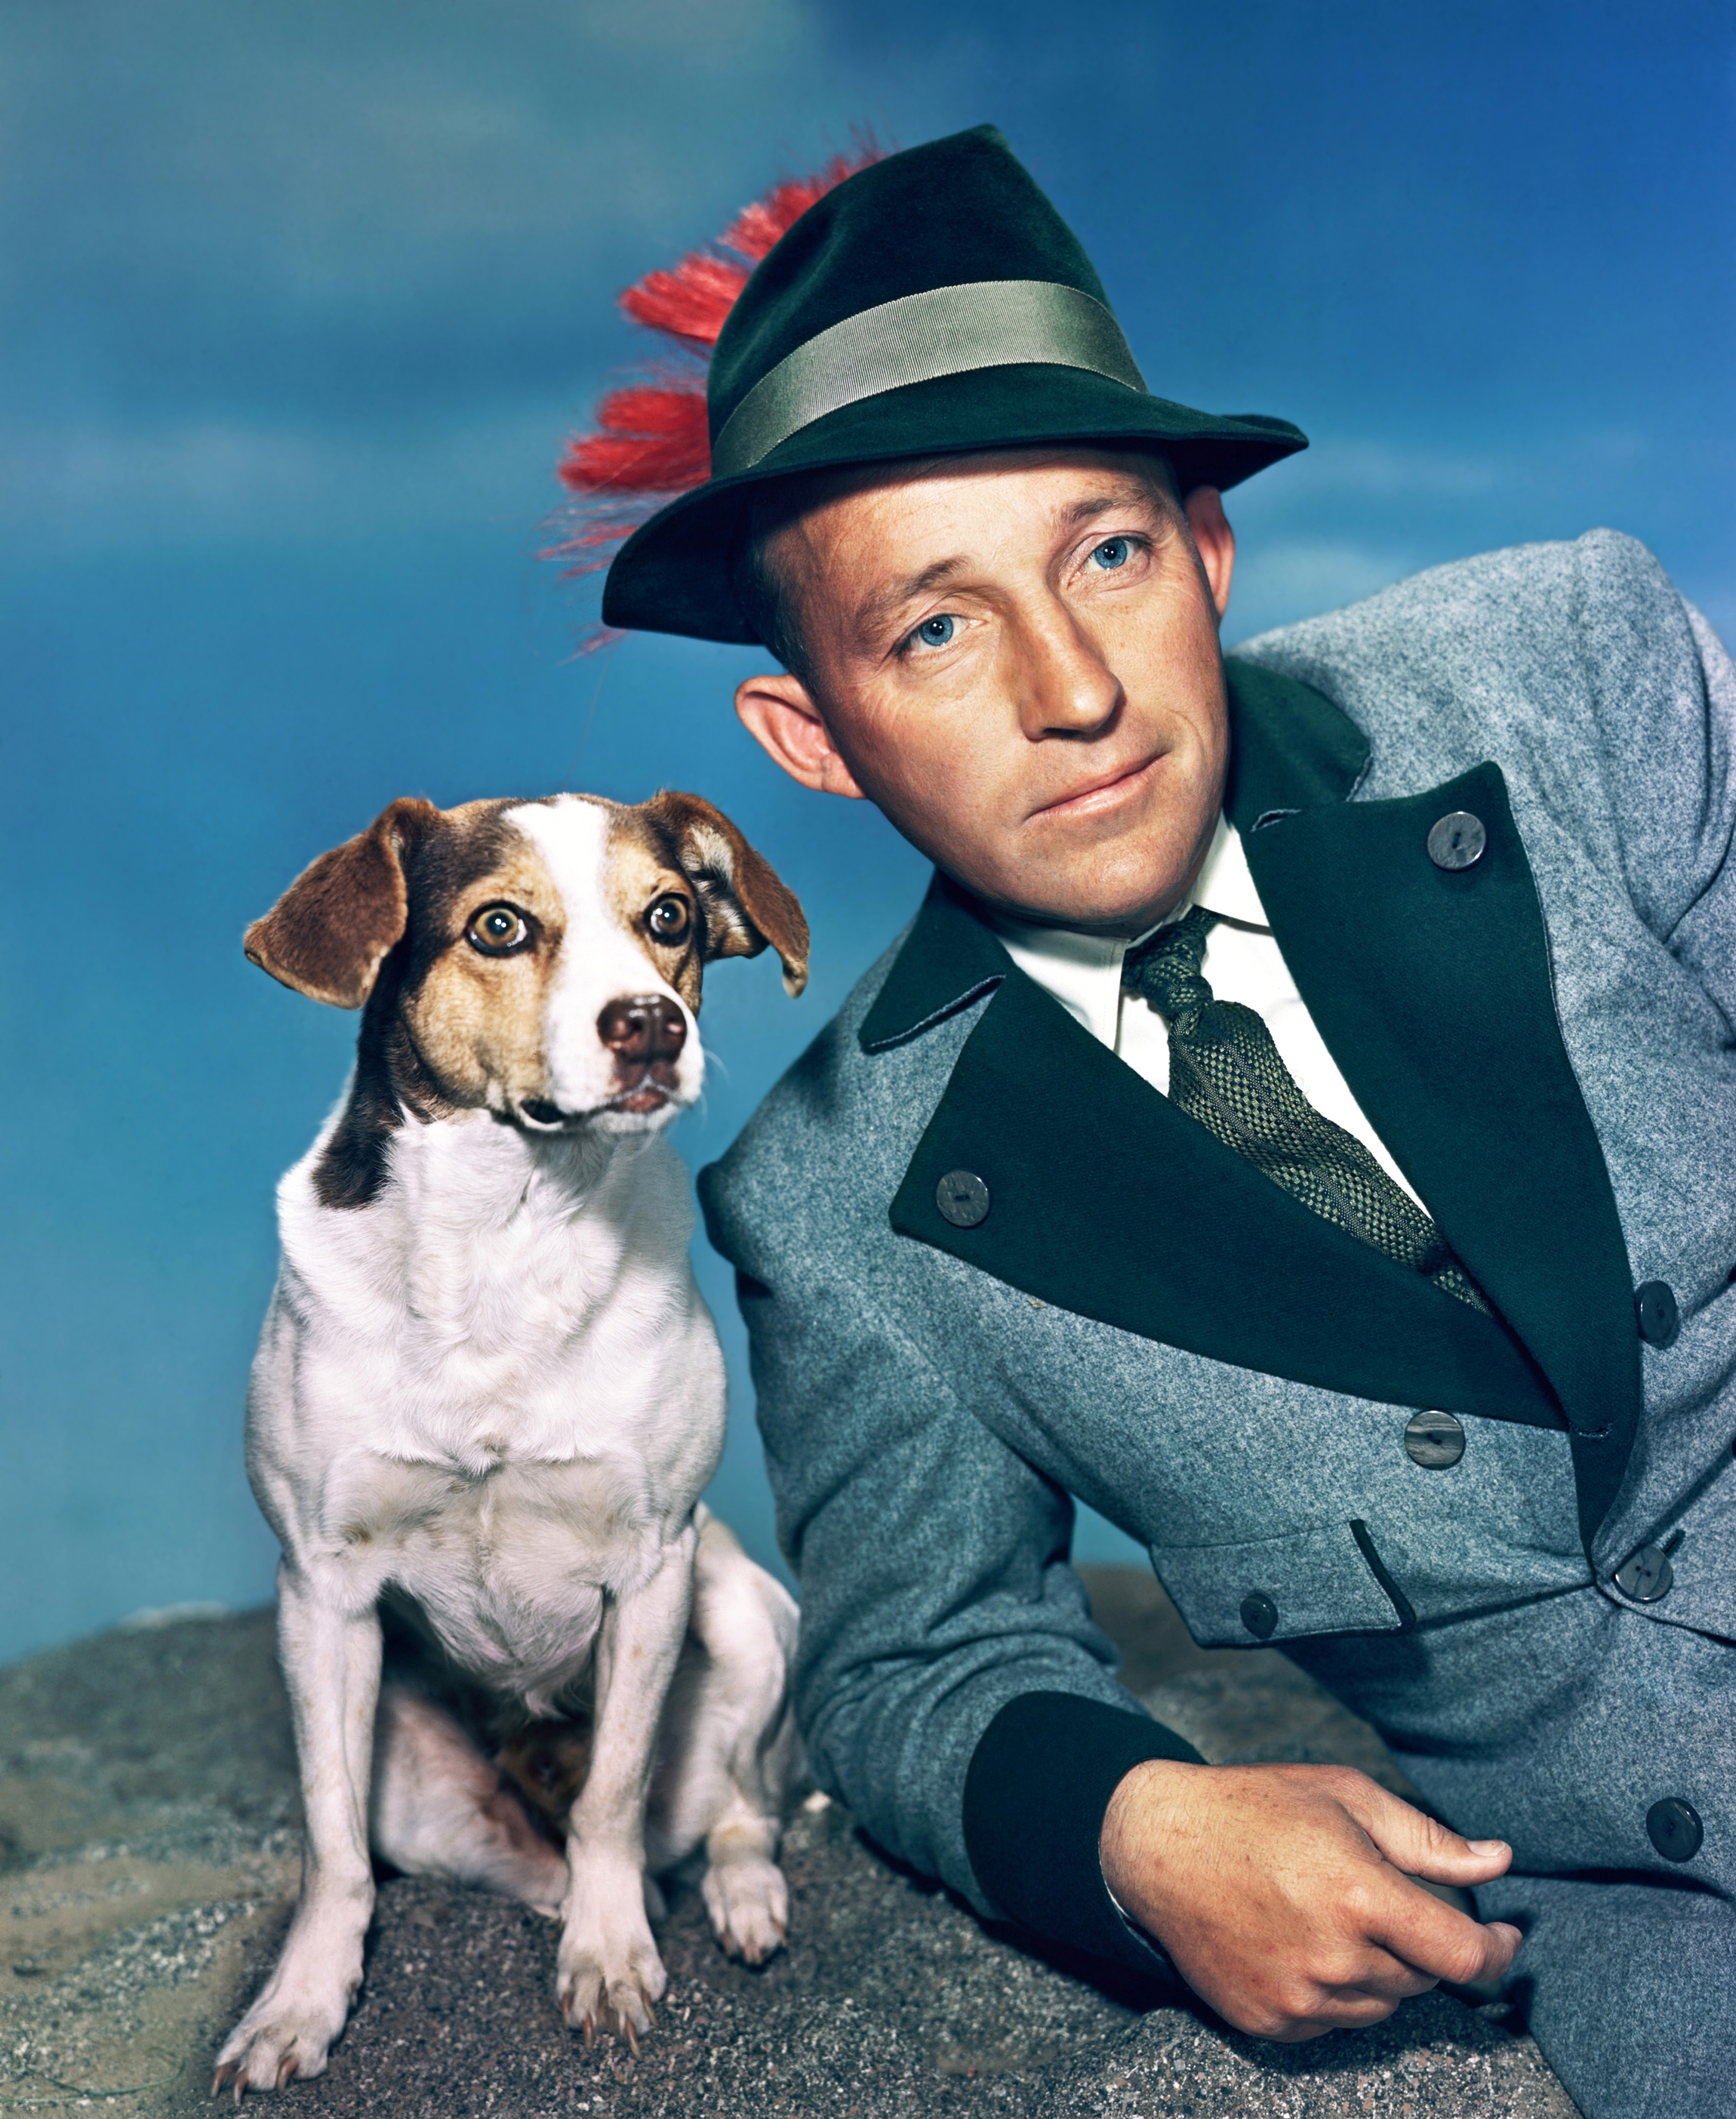 Bing Crosby in The Emperor Waltz (1948)